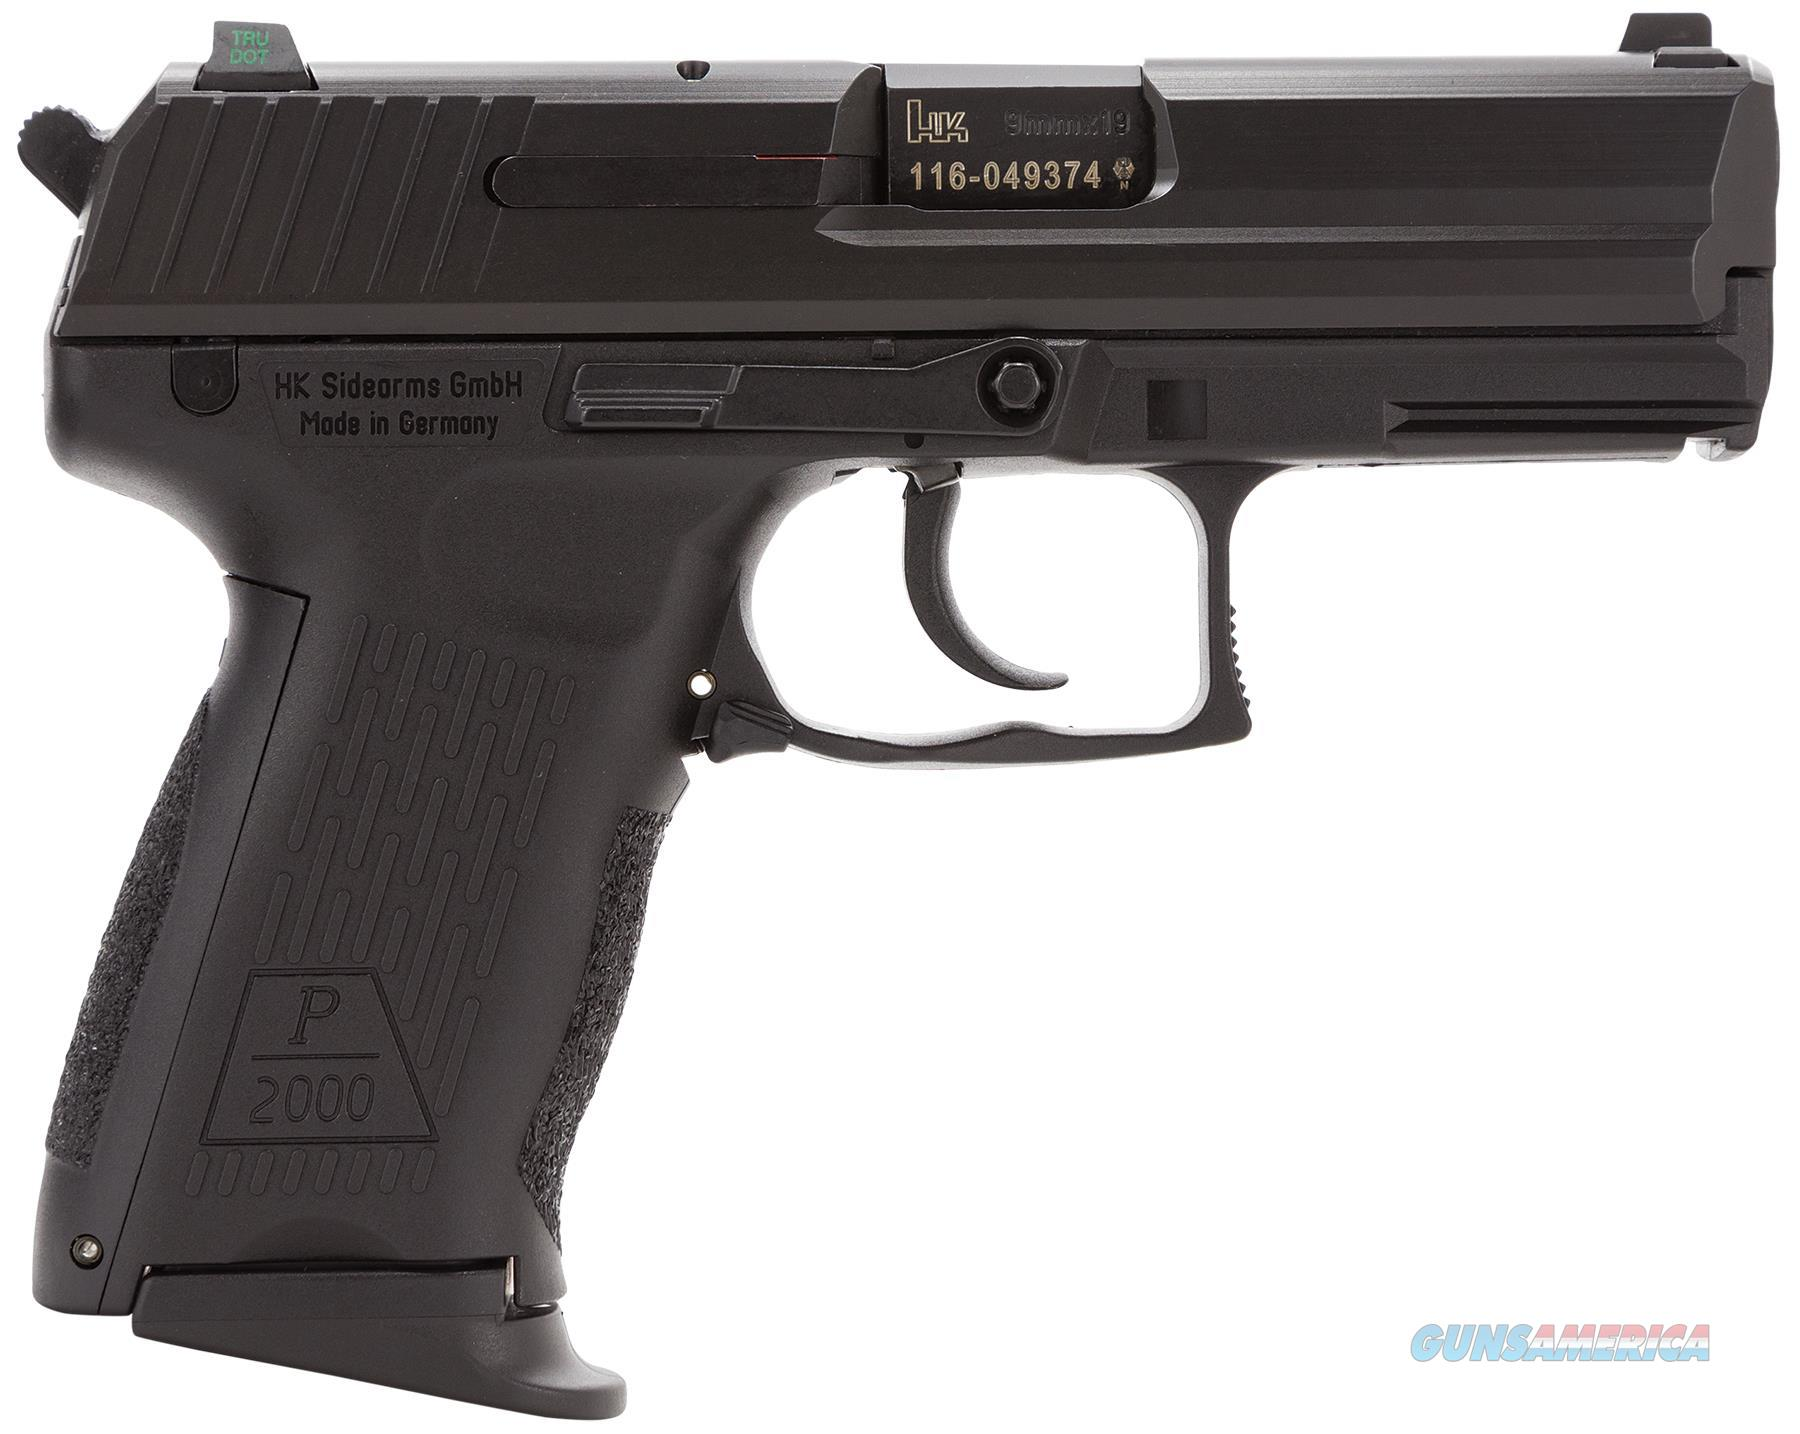 "HK 709203LEA5 P2000 V3 3MAGS DA/SA 9MM 3.7"" 13+1 INTERCHANGEABLE BACKSTRAP BLUED 709203LEA5  Guns > Pistols > Heckler & Koch Pistols > Polymer Frame"